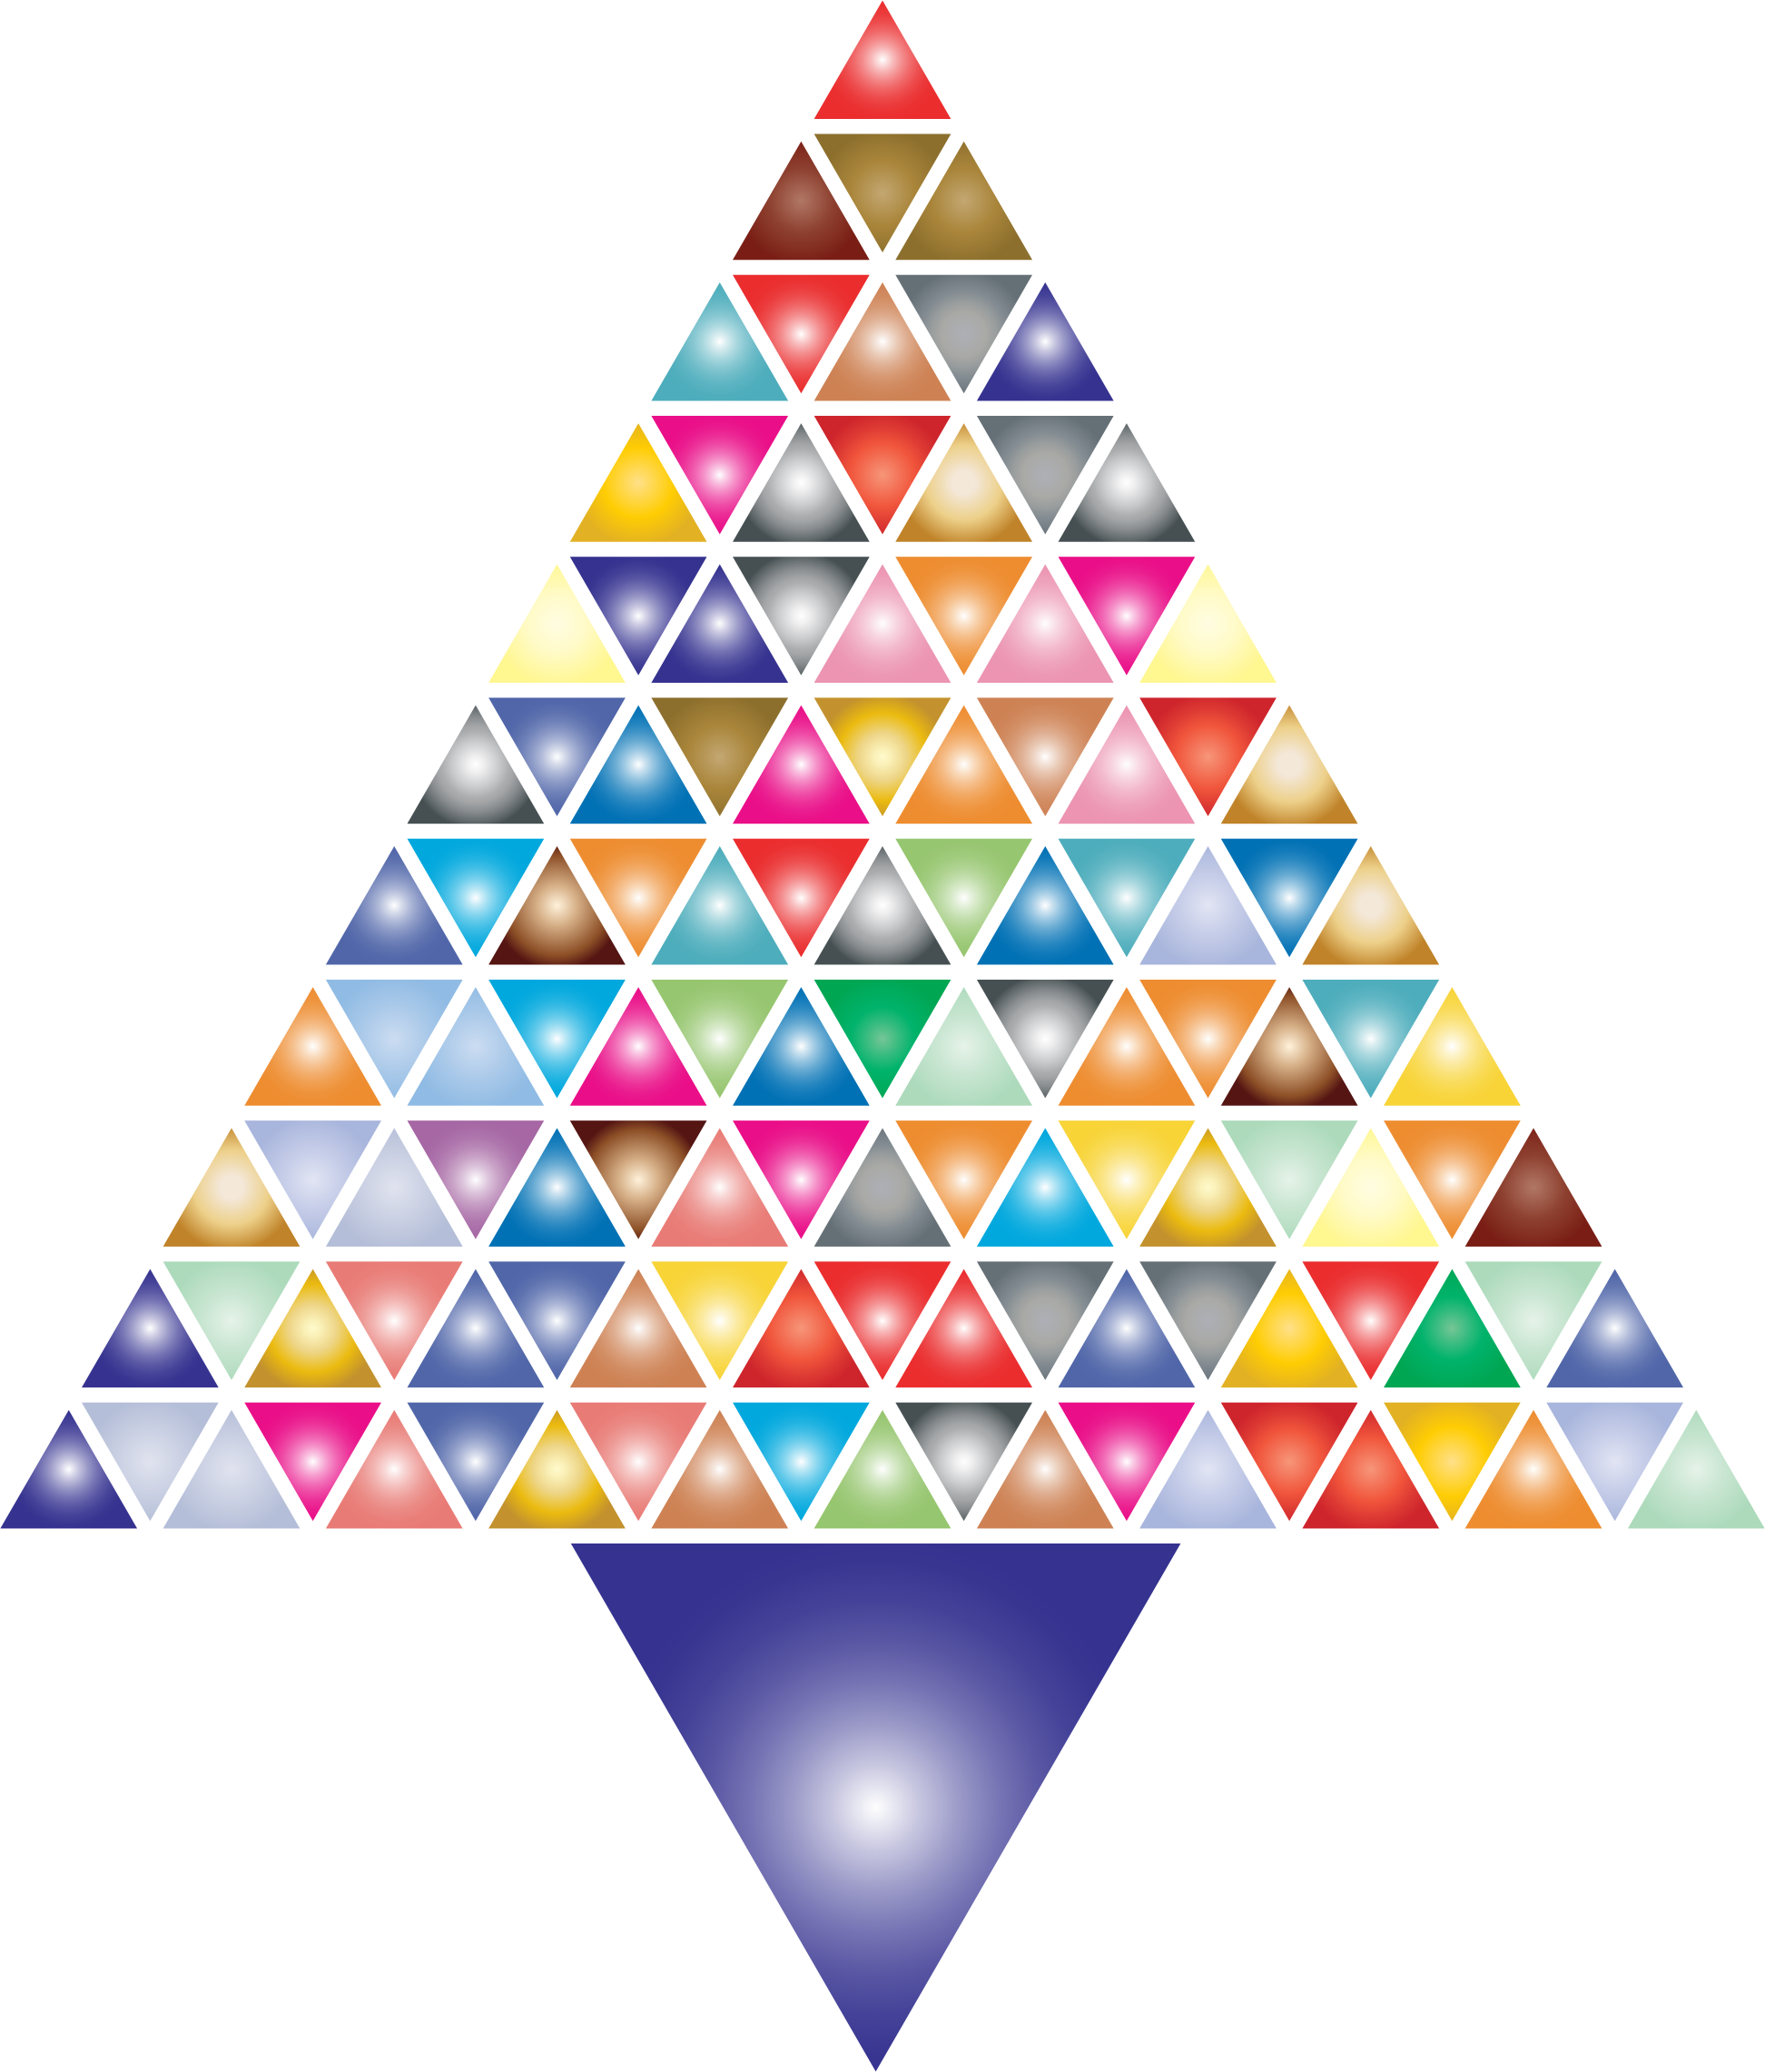 Prismatic Abstract Triangular Christmas Tree 2 by GDJ